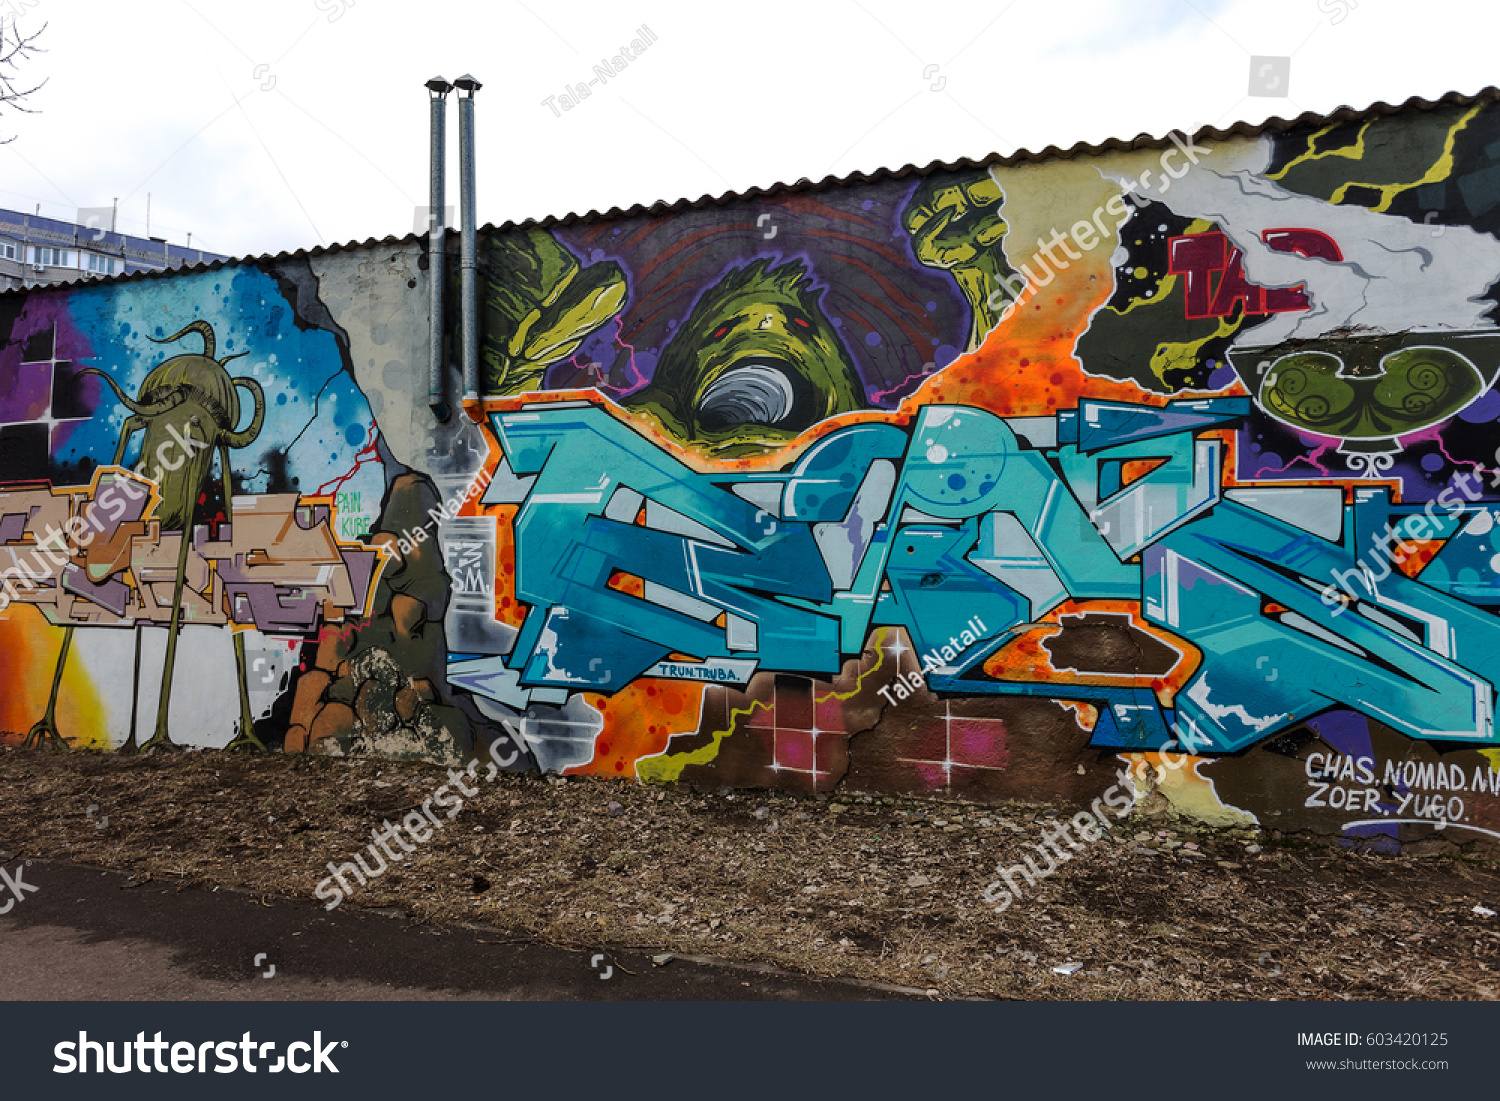 Art under ground beautiful street art graffiti style the wall is decorated with abstract